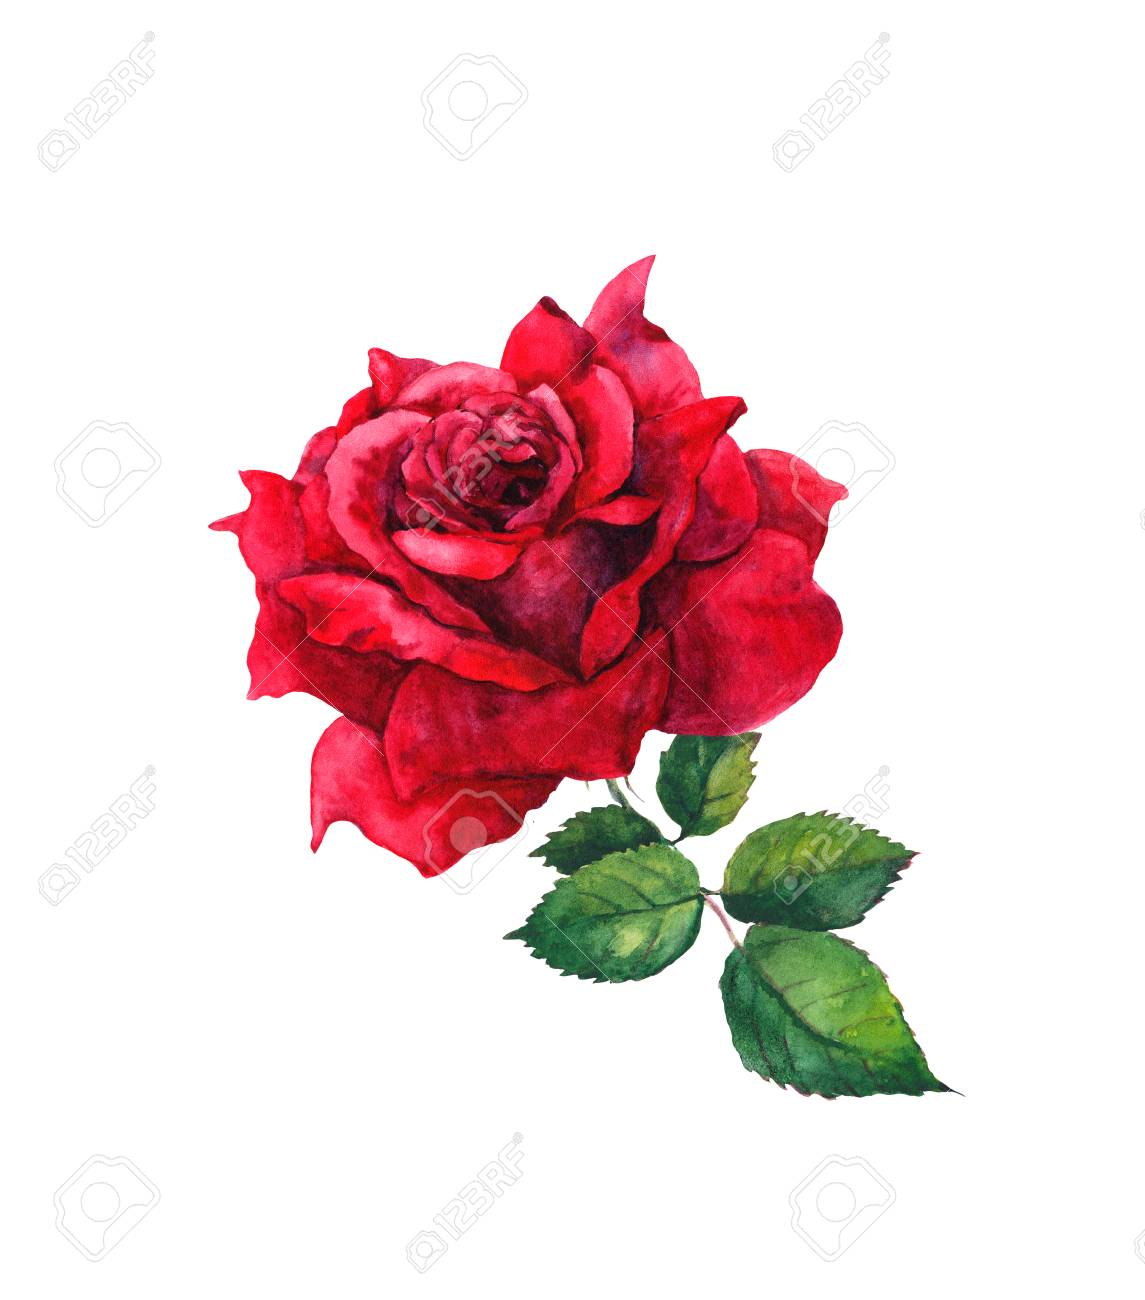 One Red Rose Flower Isolated Watercolor Painting Stock Photo